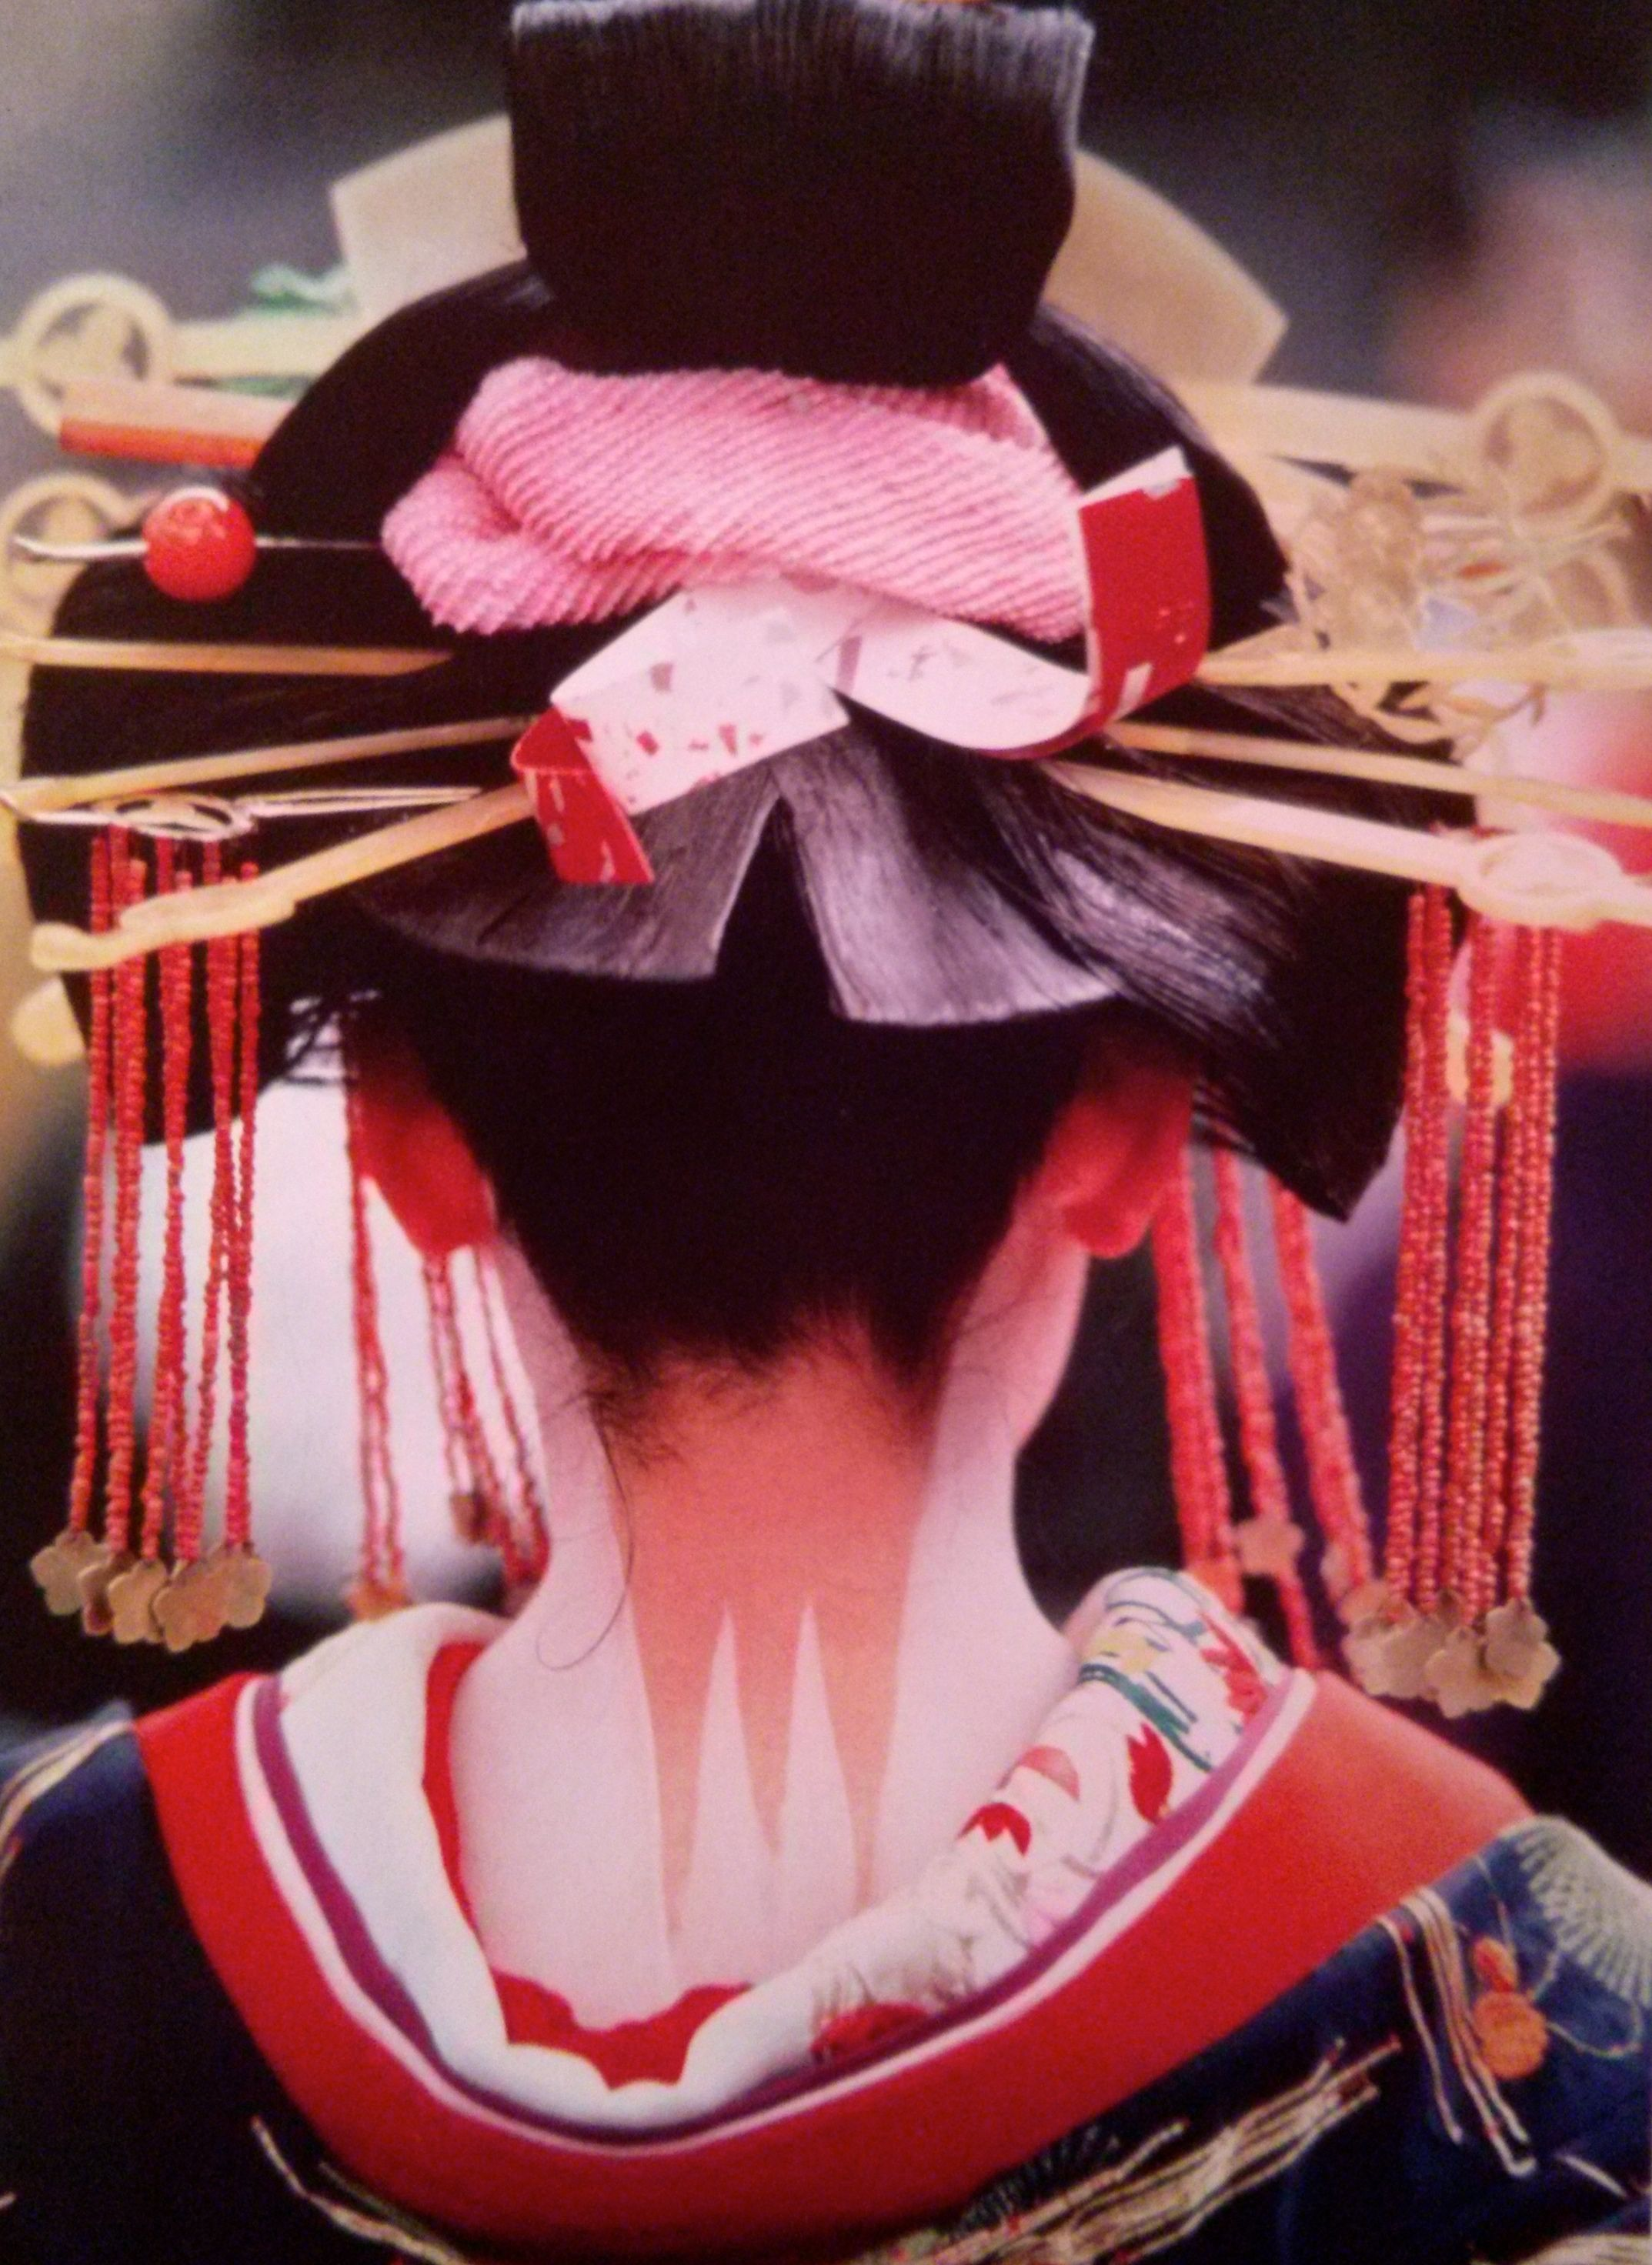 17 Things You Might Not Know About Geisha Culture | Matilda, All ...